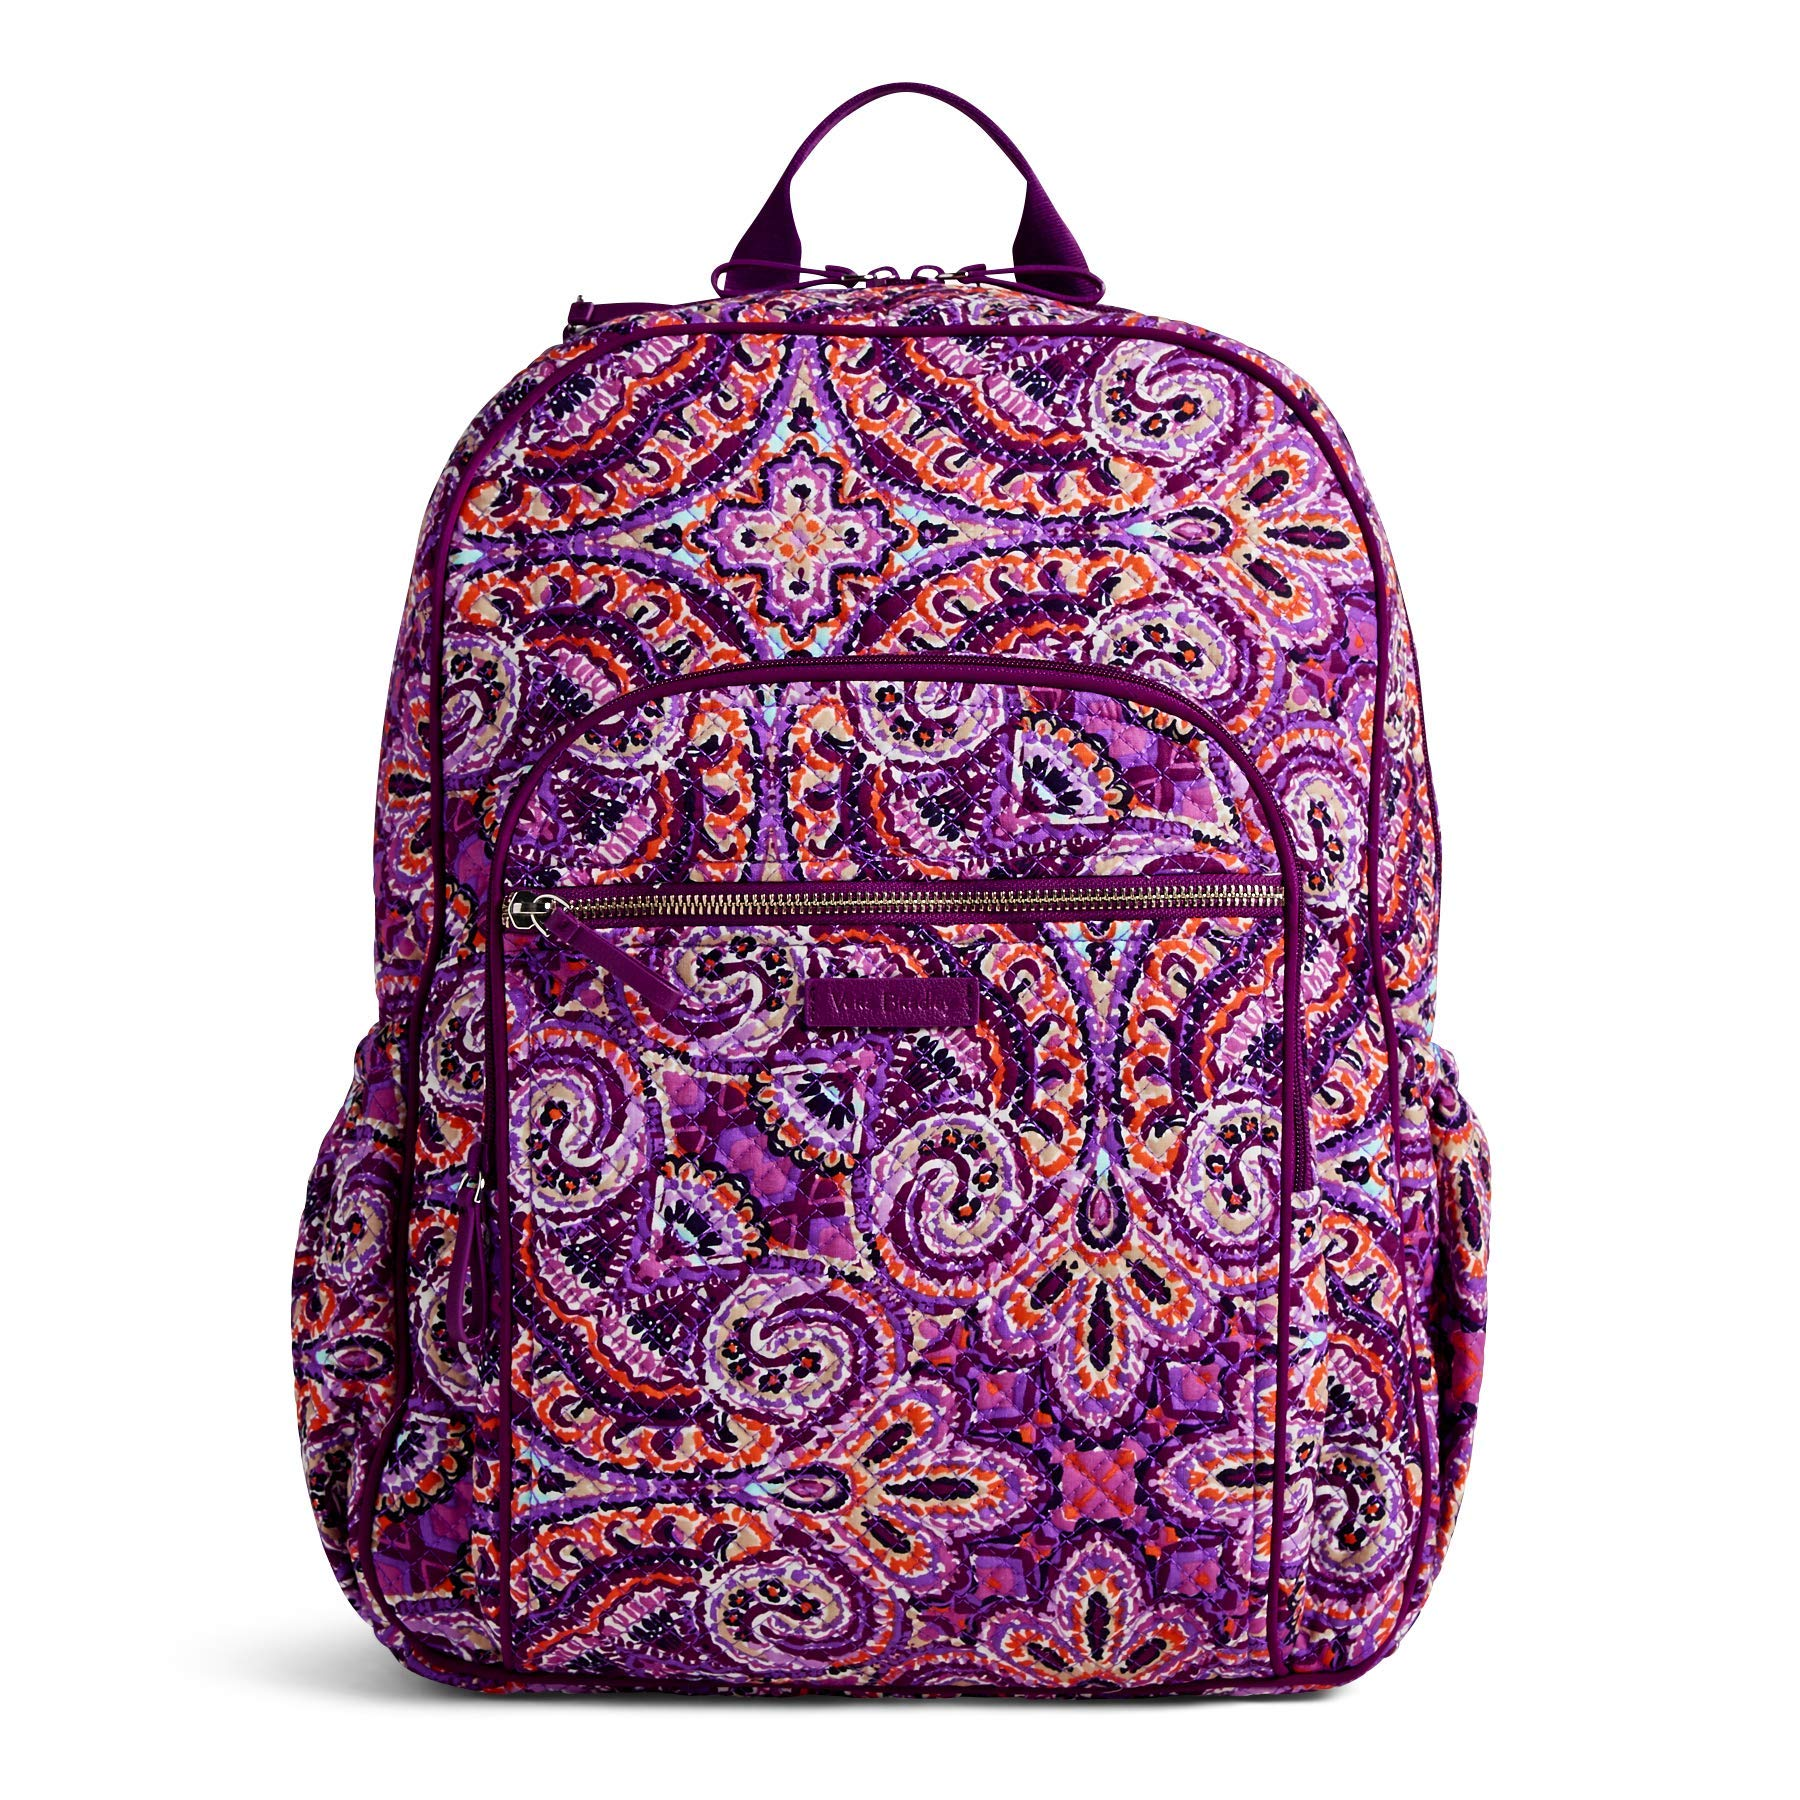 Vera Bradley Iconic Campus Backpack, Signature Cotton, dream tapestry